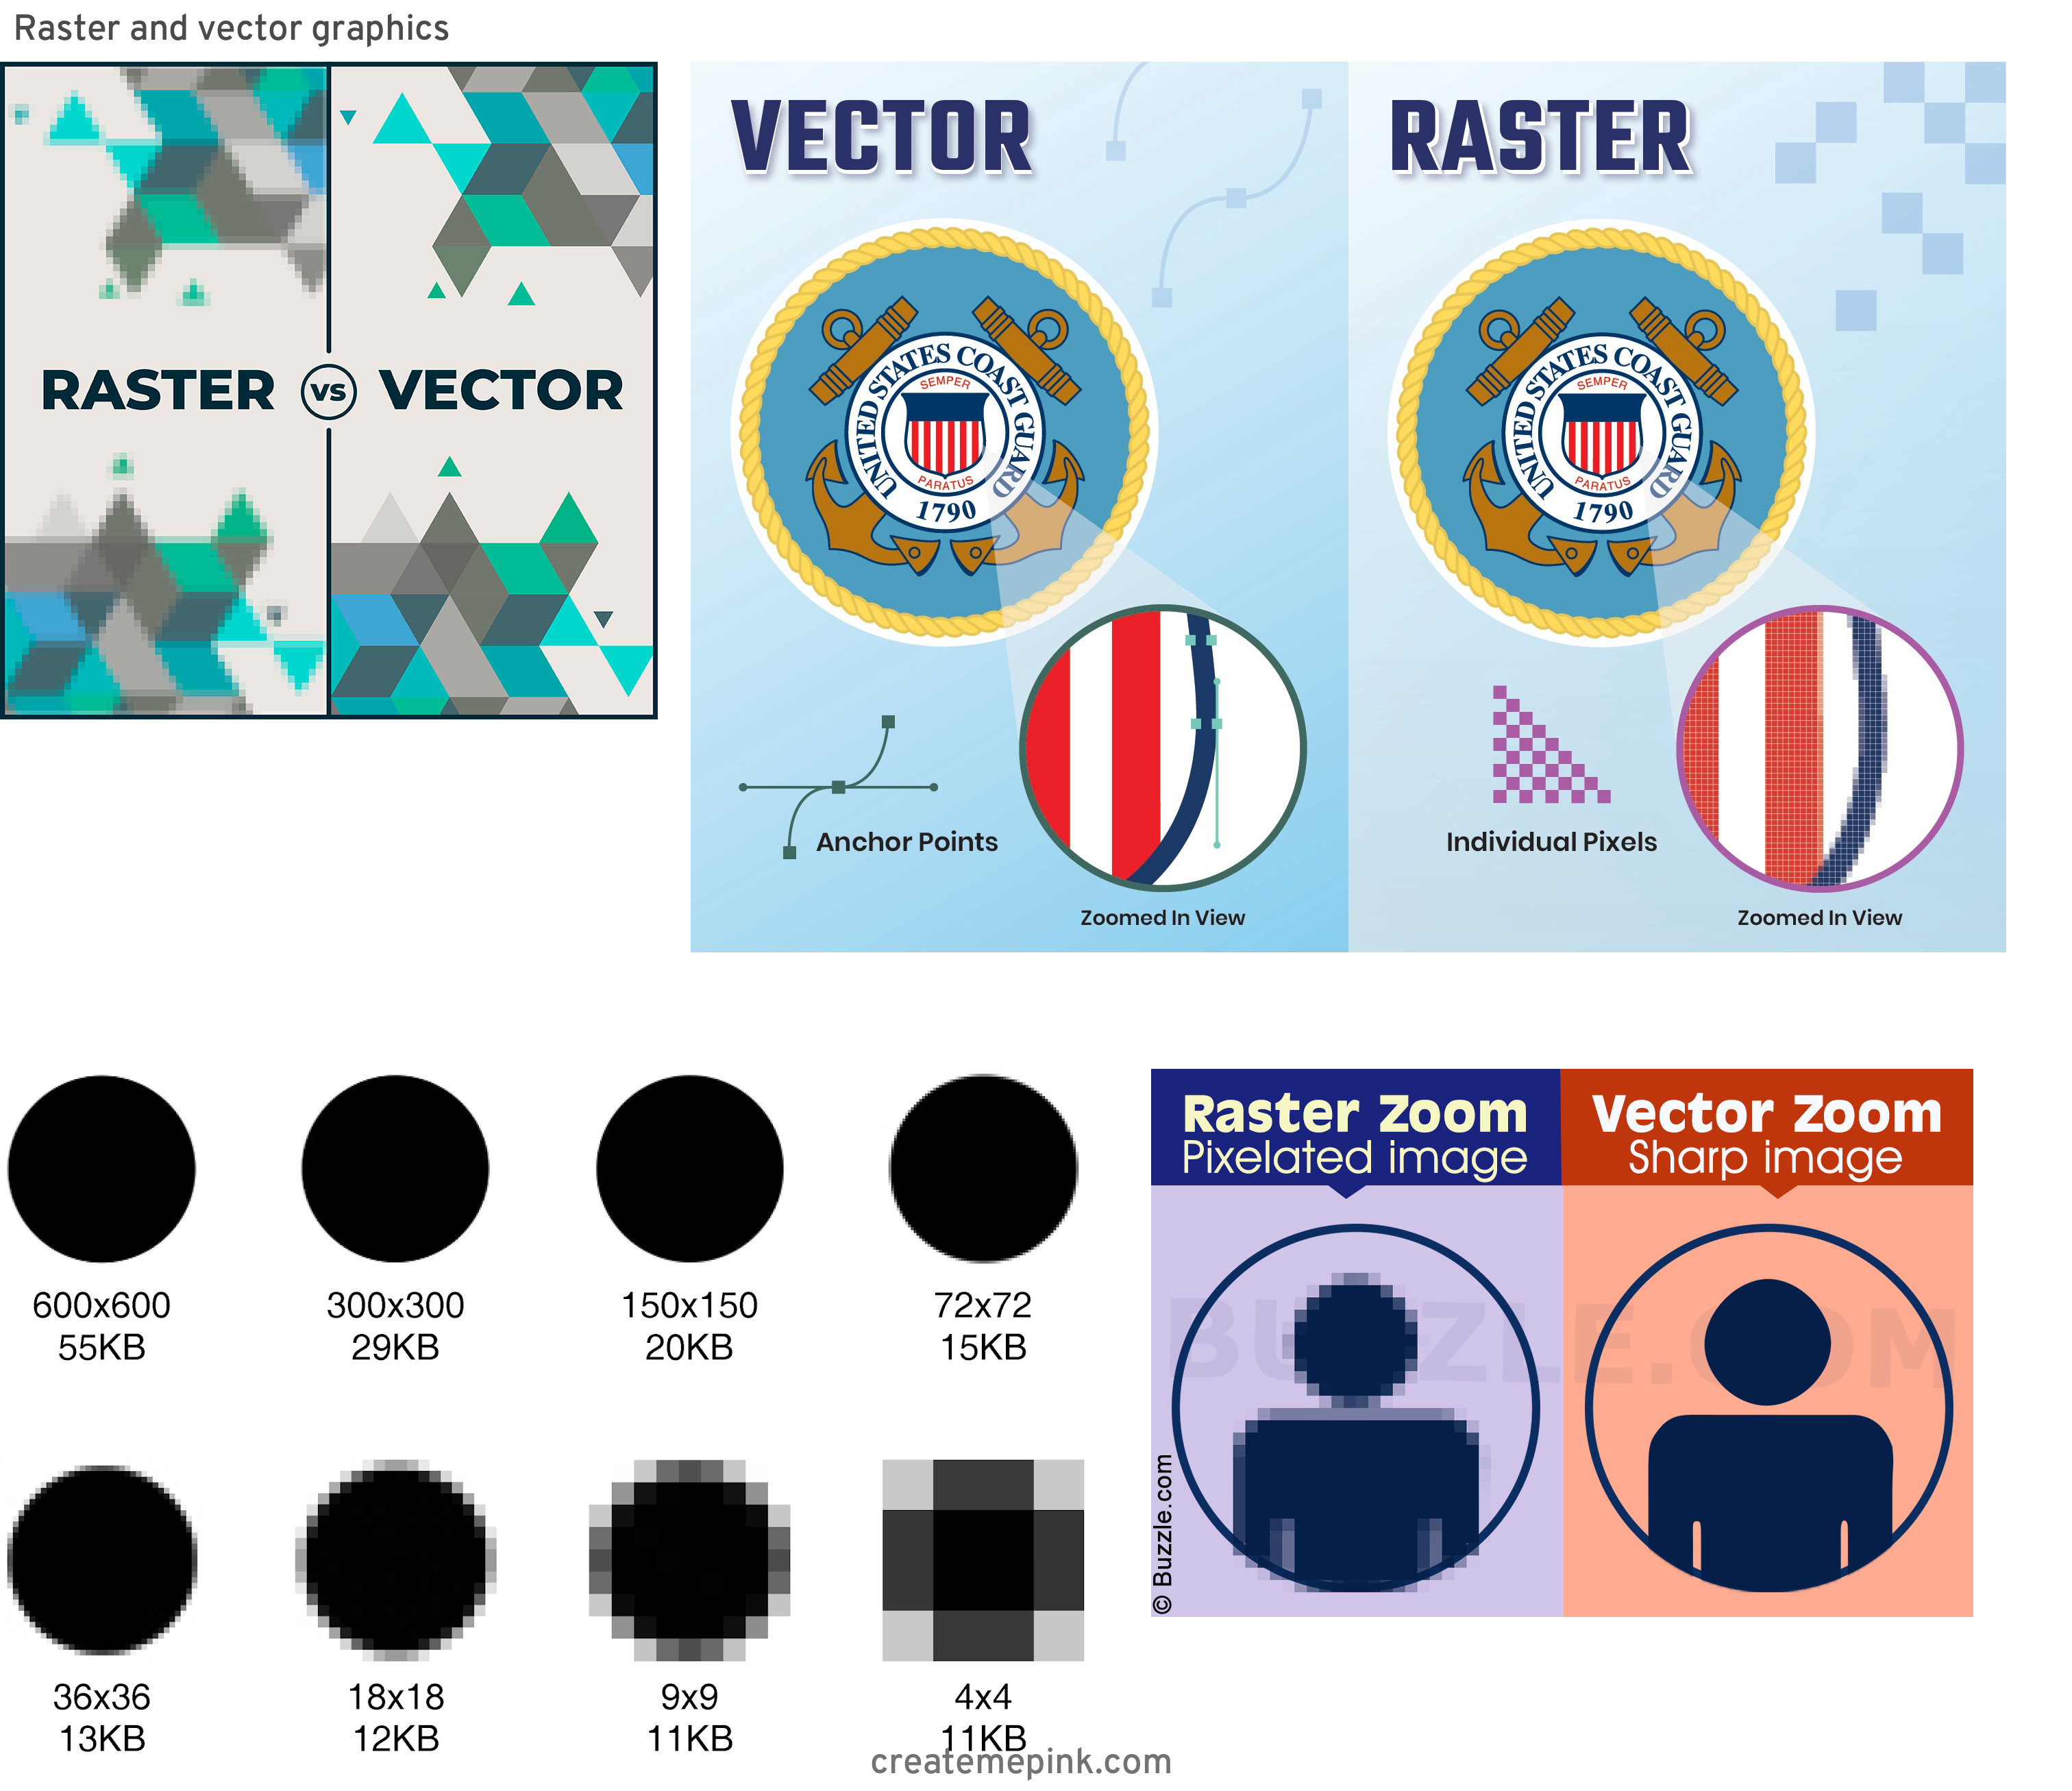 Difference Between Raster And Vector: Raster And Vector Graphics